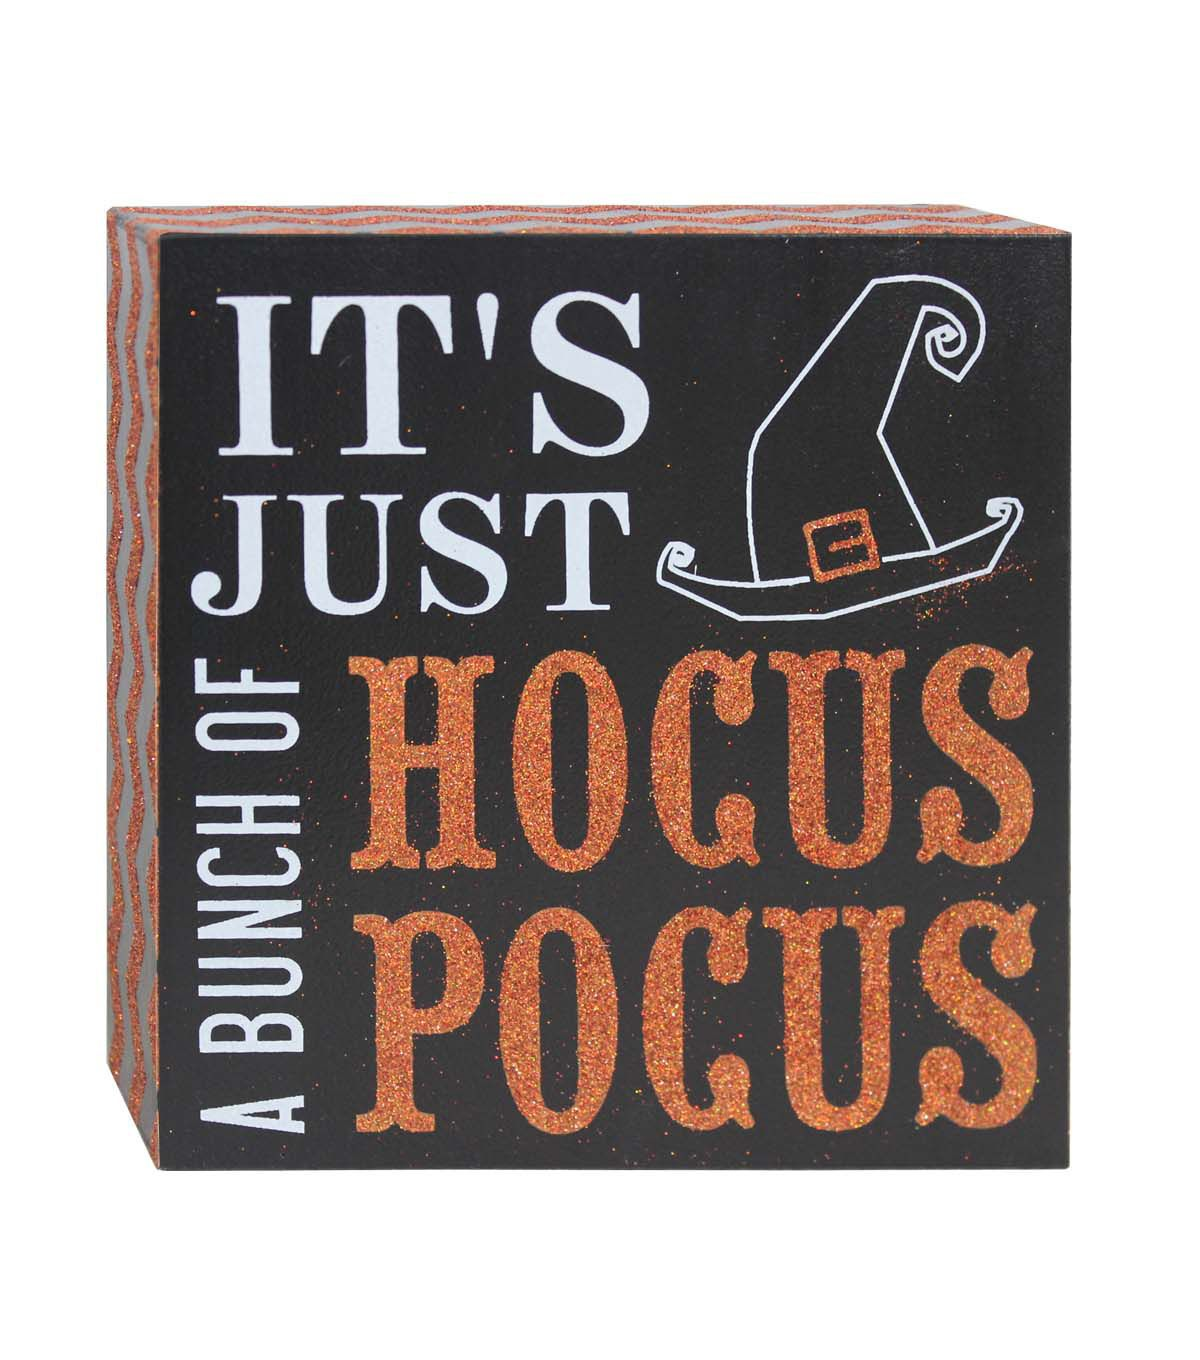 Accentuate the decor theme of your table or mantel for a fun ...